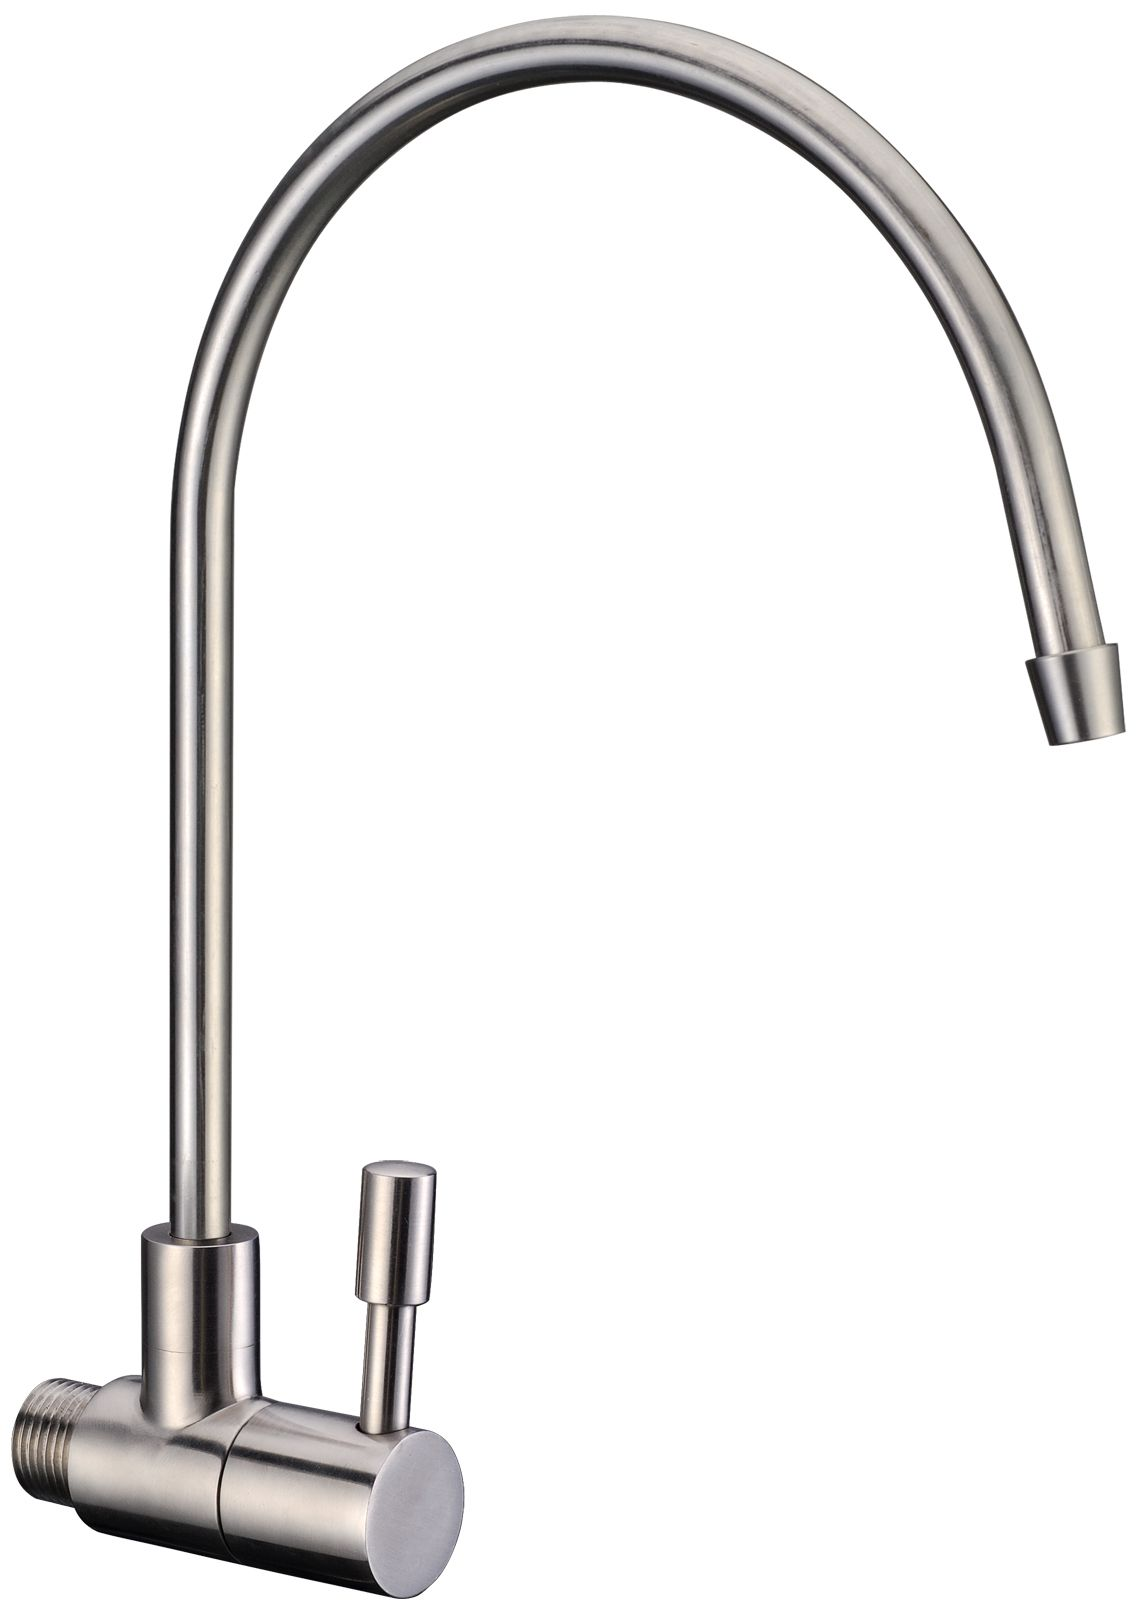 Cheap Kitchen Faucets on Sale at Bargain Price, Buy Quality faucet ...